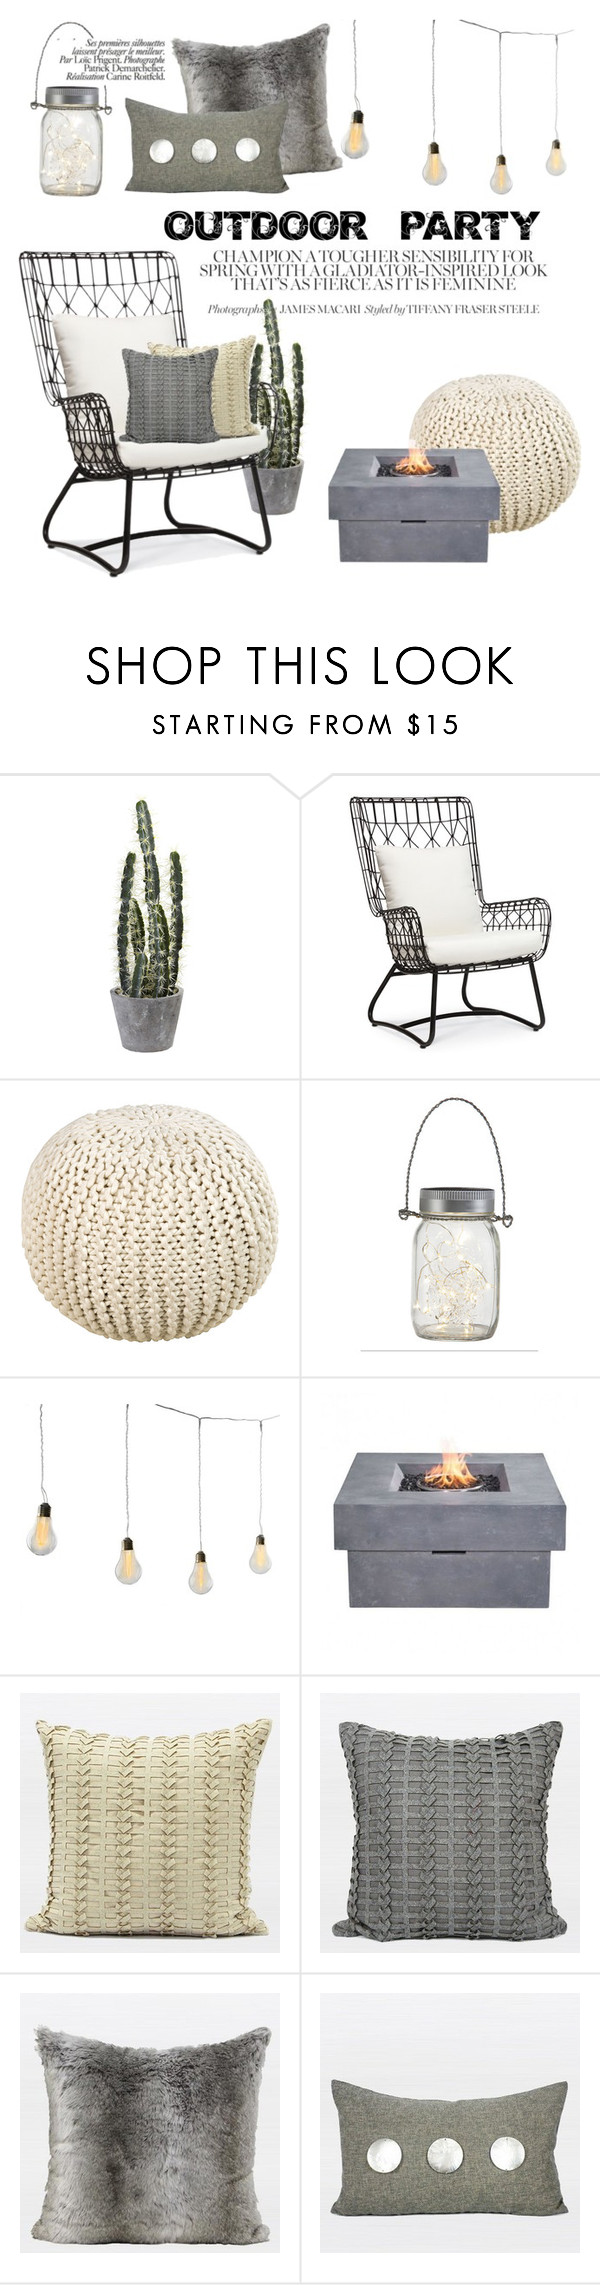 Interior design home parties -  Outdoor Party By Gentillehome Liked On Polyvore Featuring Interior Interiors Interior